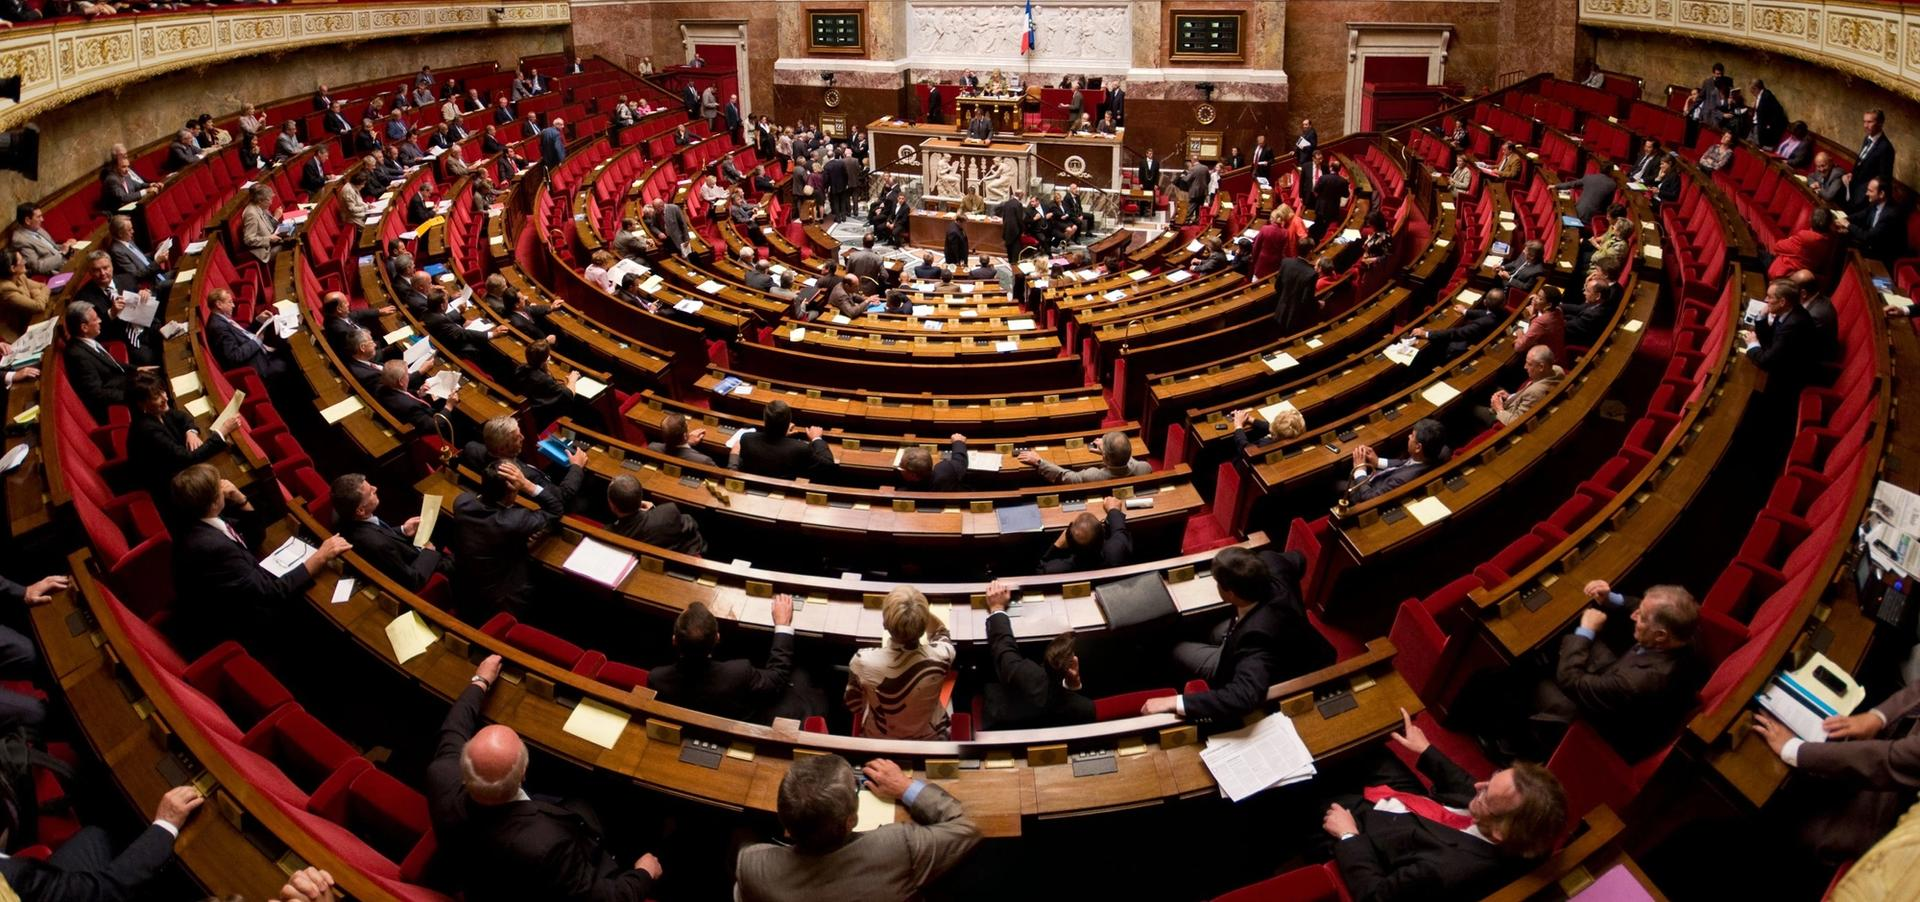 French parliament gave the restitution bill its final approval today